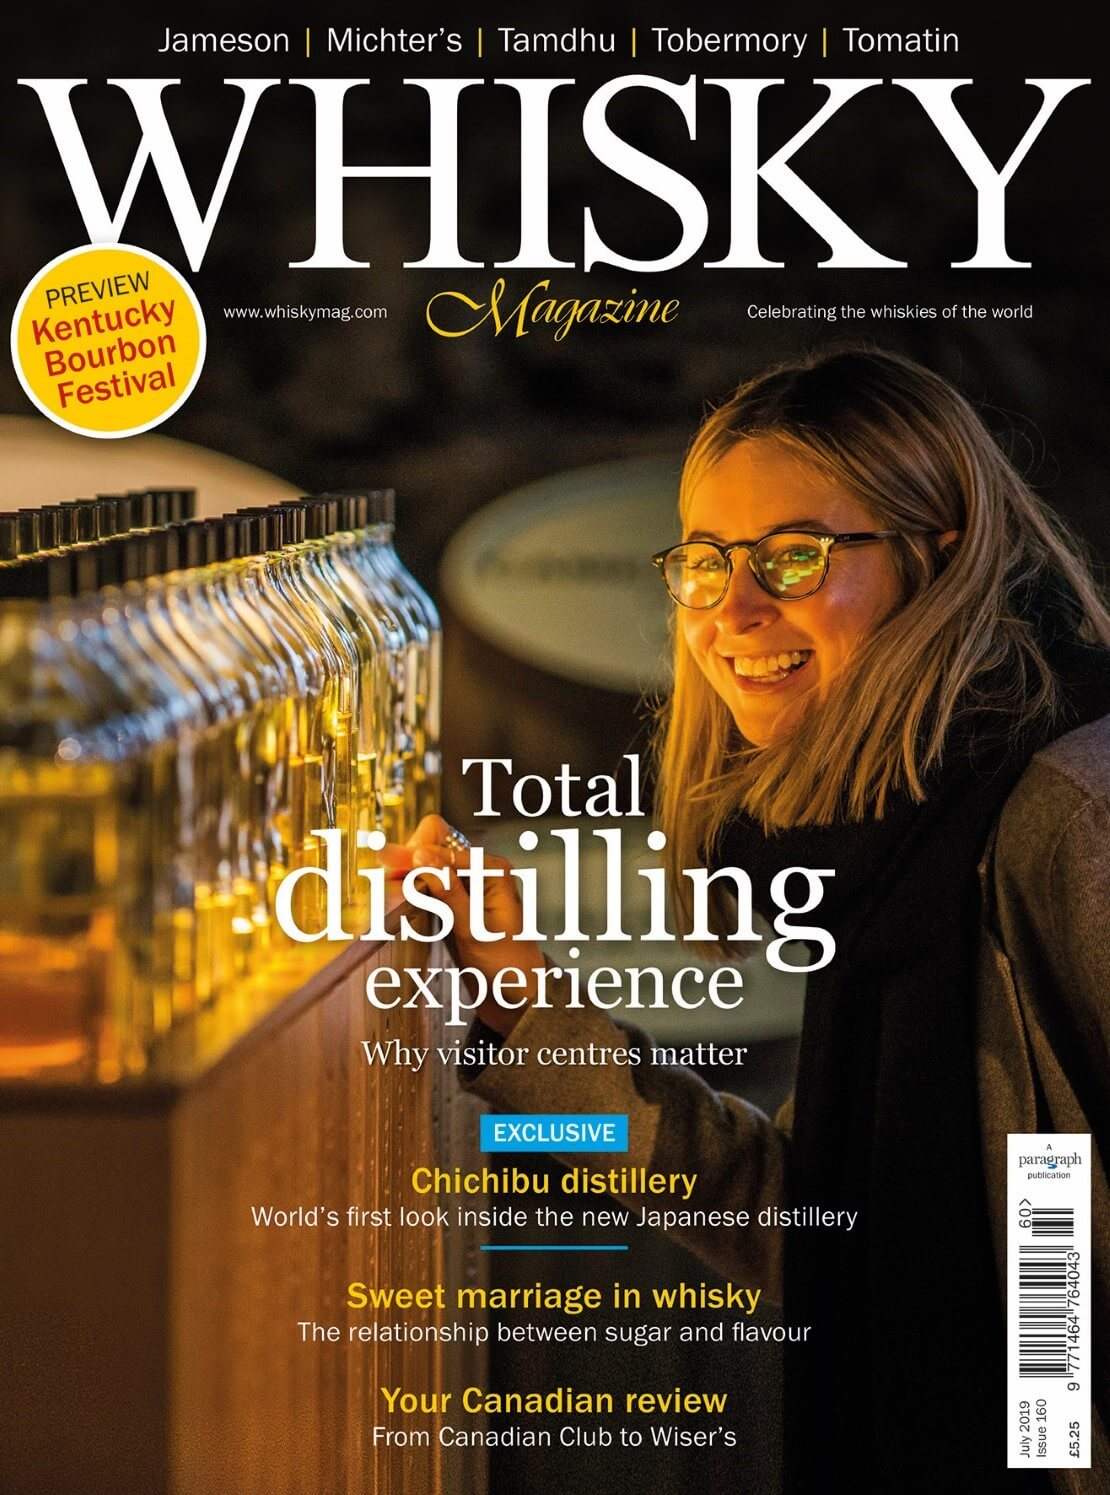 Why visitors centres matter, Chichibu Distillery exclusive, Kentucky Bourbon Festival preview and a Canadian review